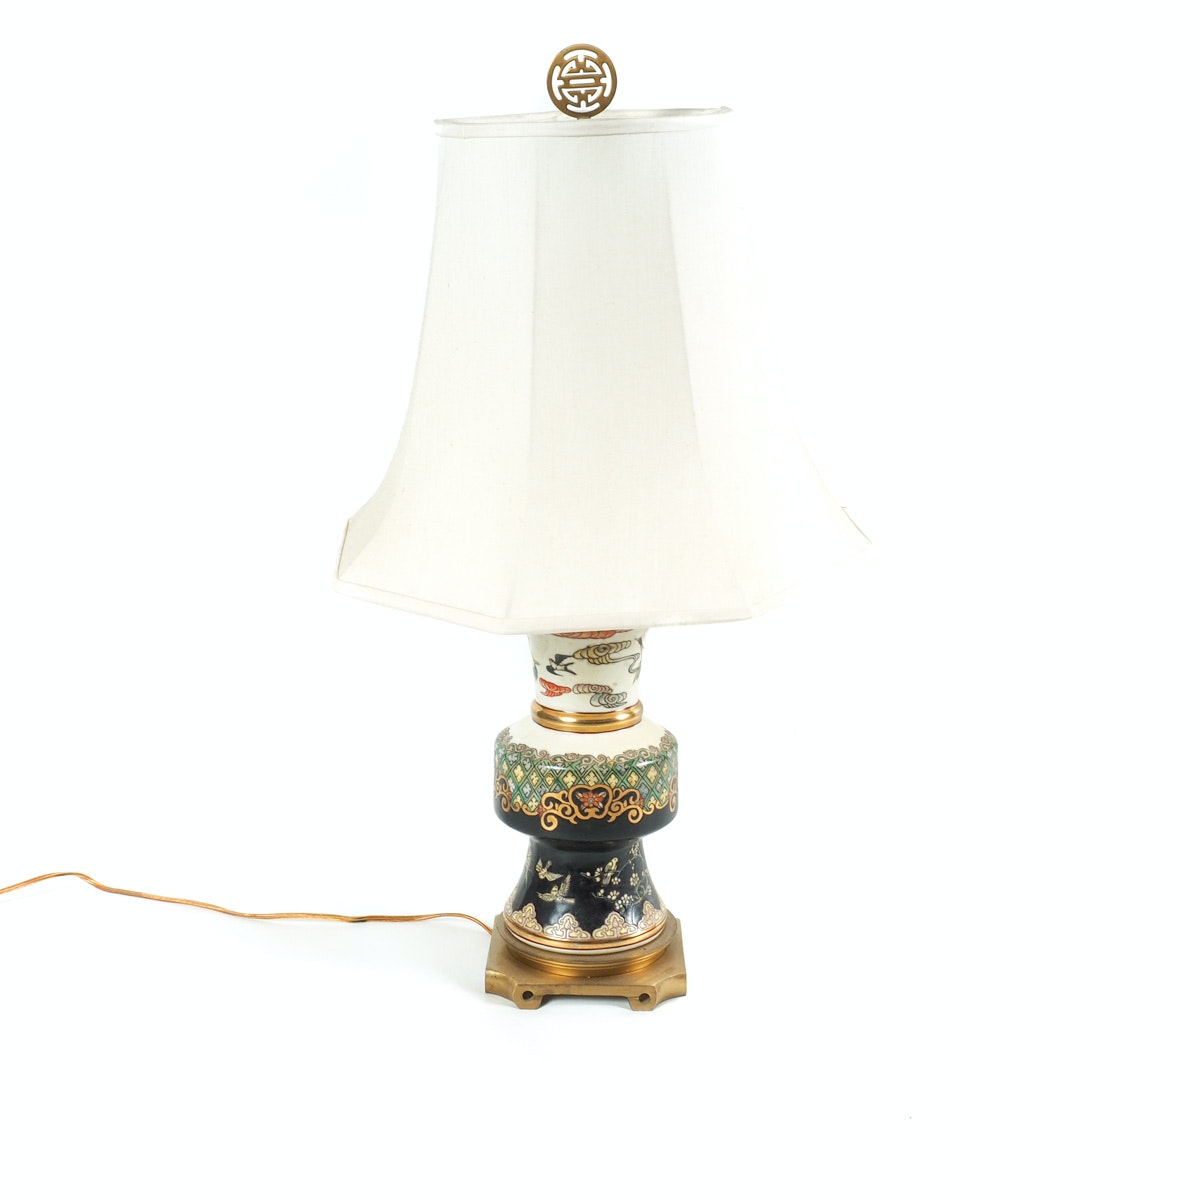 Porcelain and Brass Table Lamp